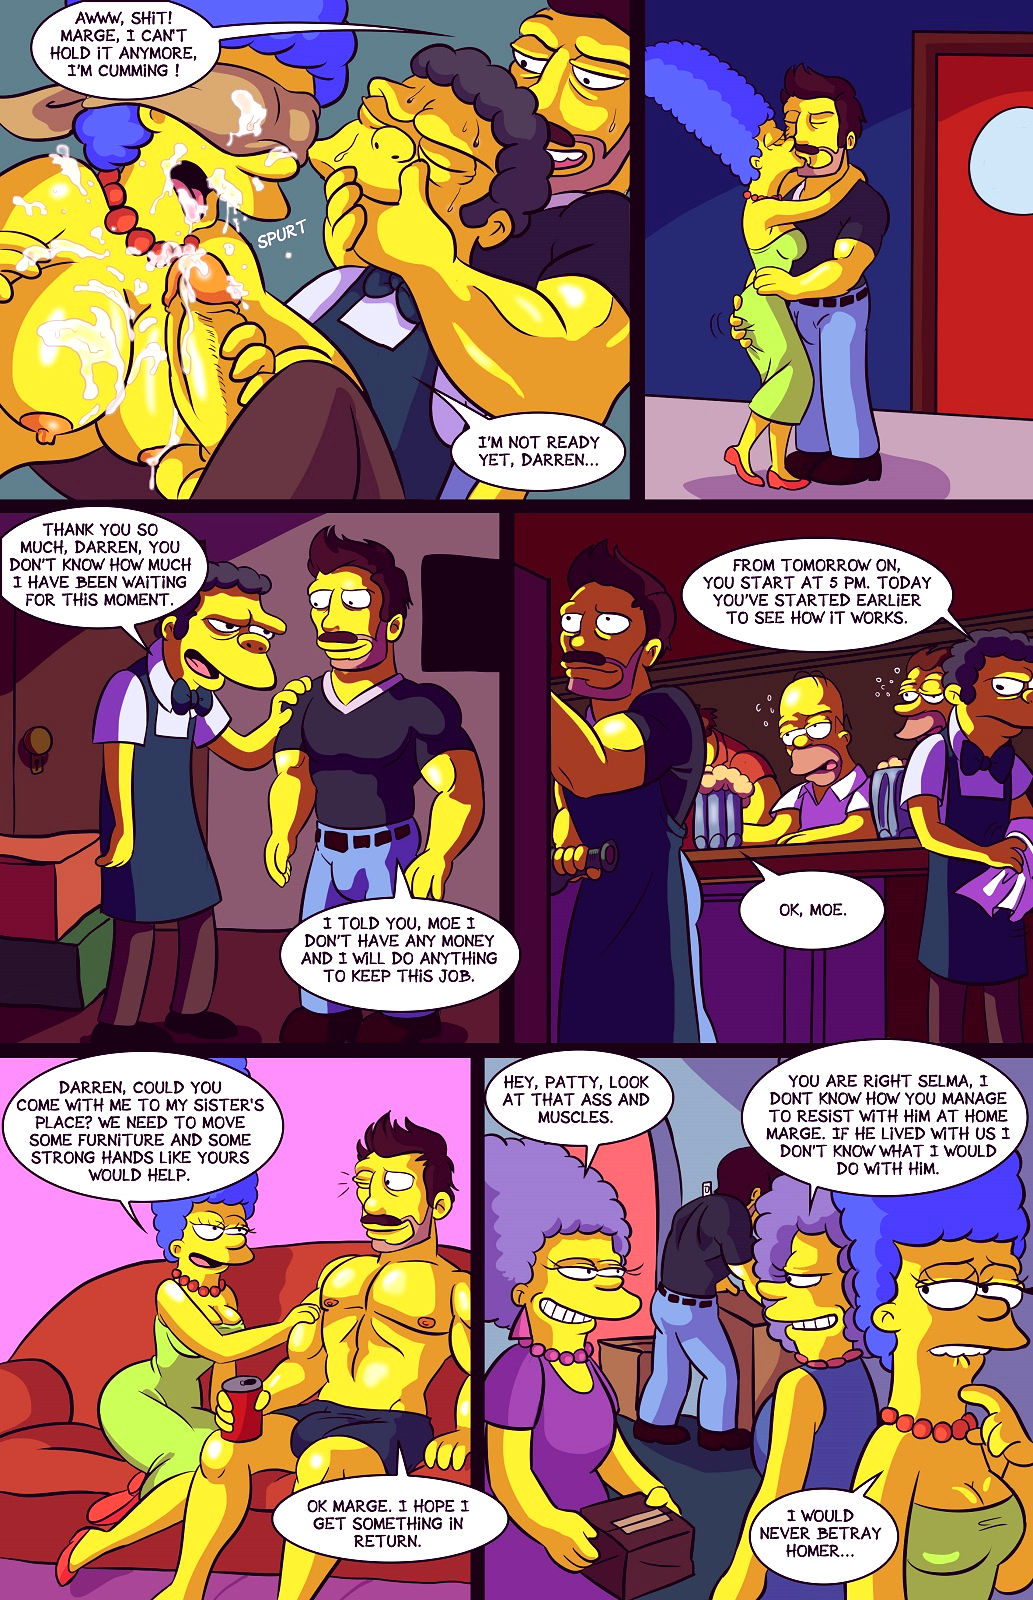 Darrens adventure or welcome to springfield porn comic picture 8